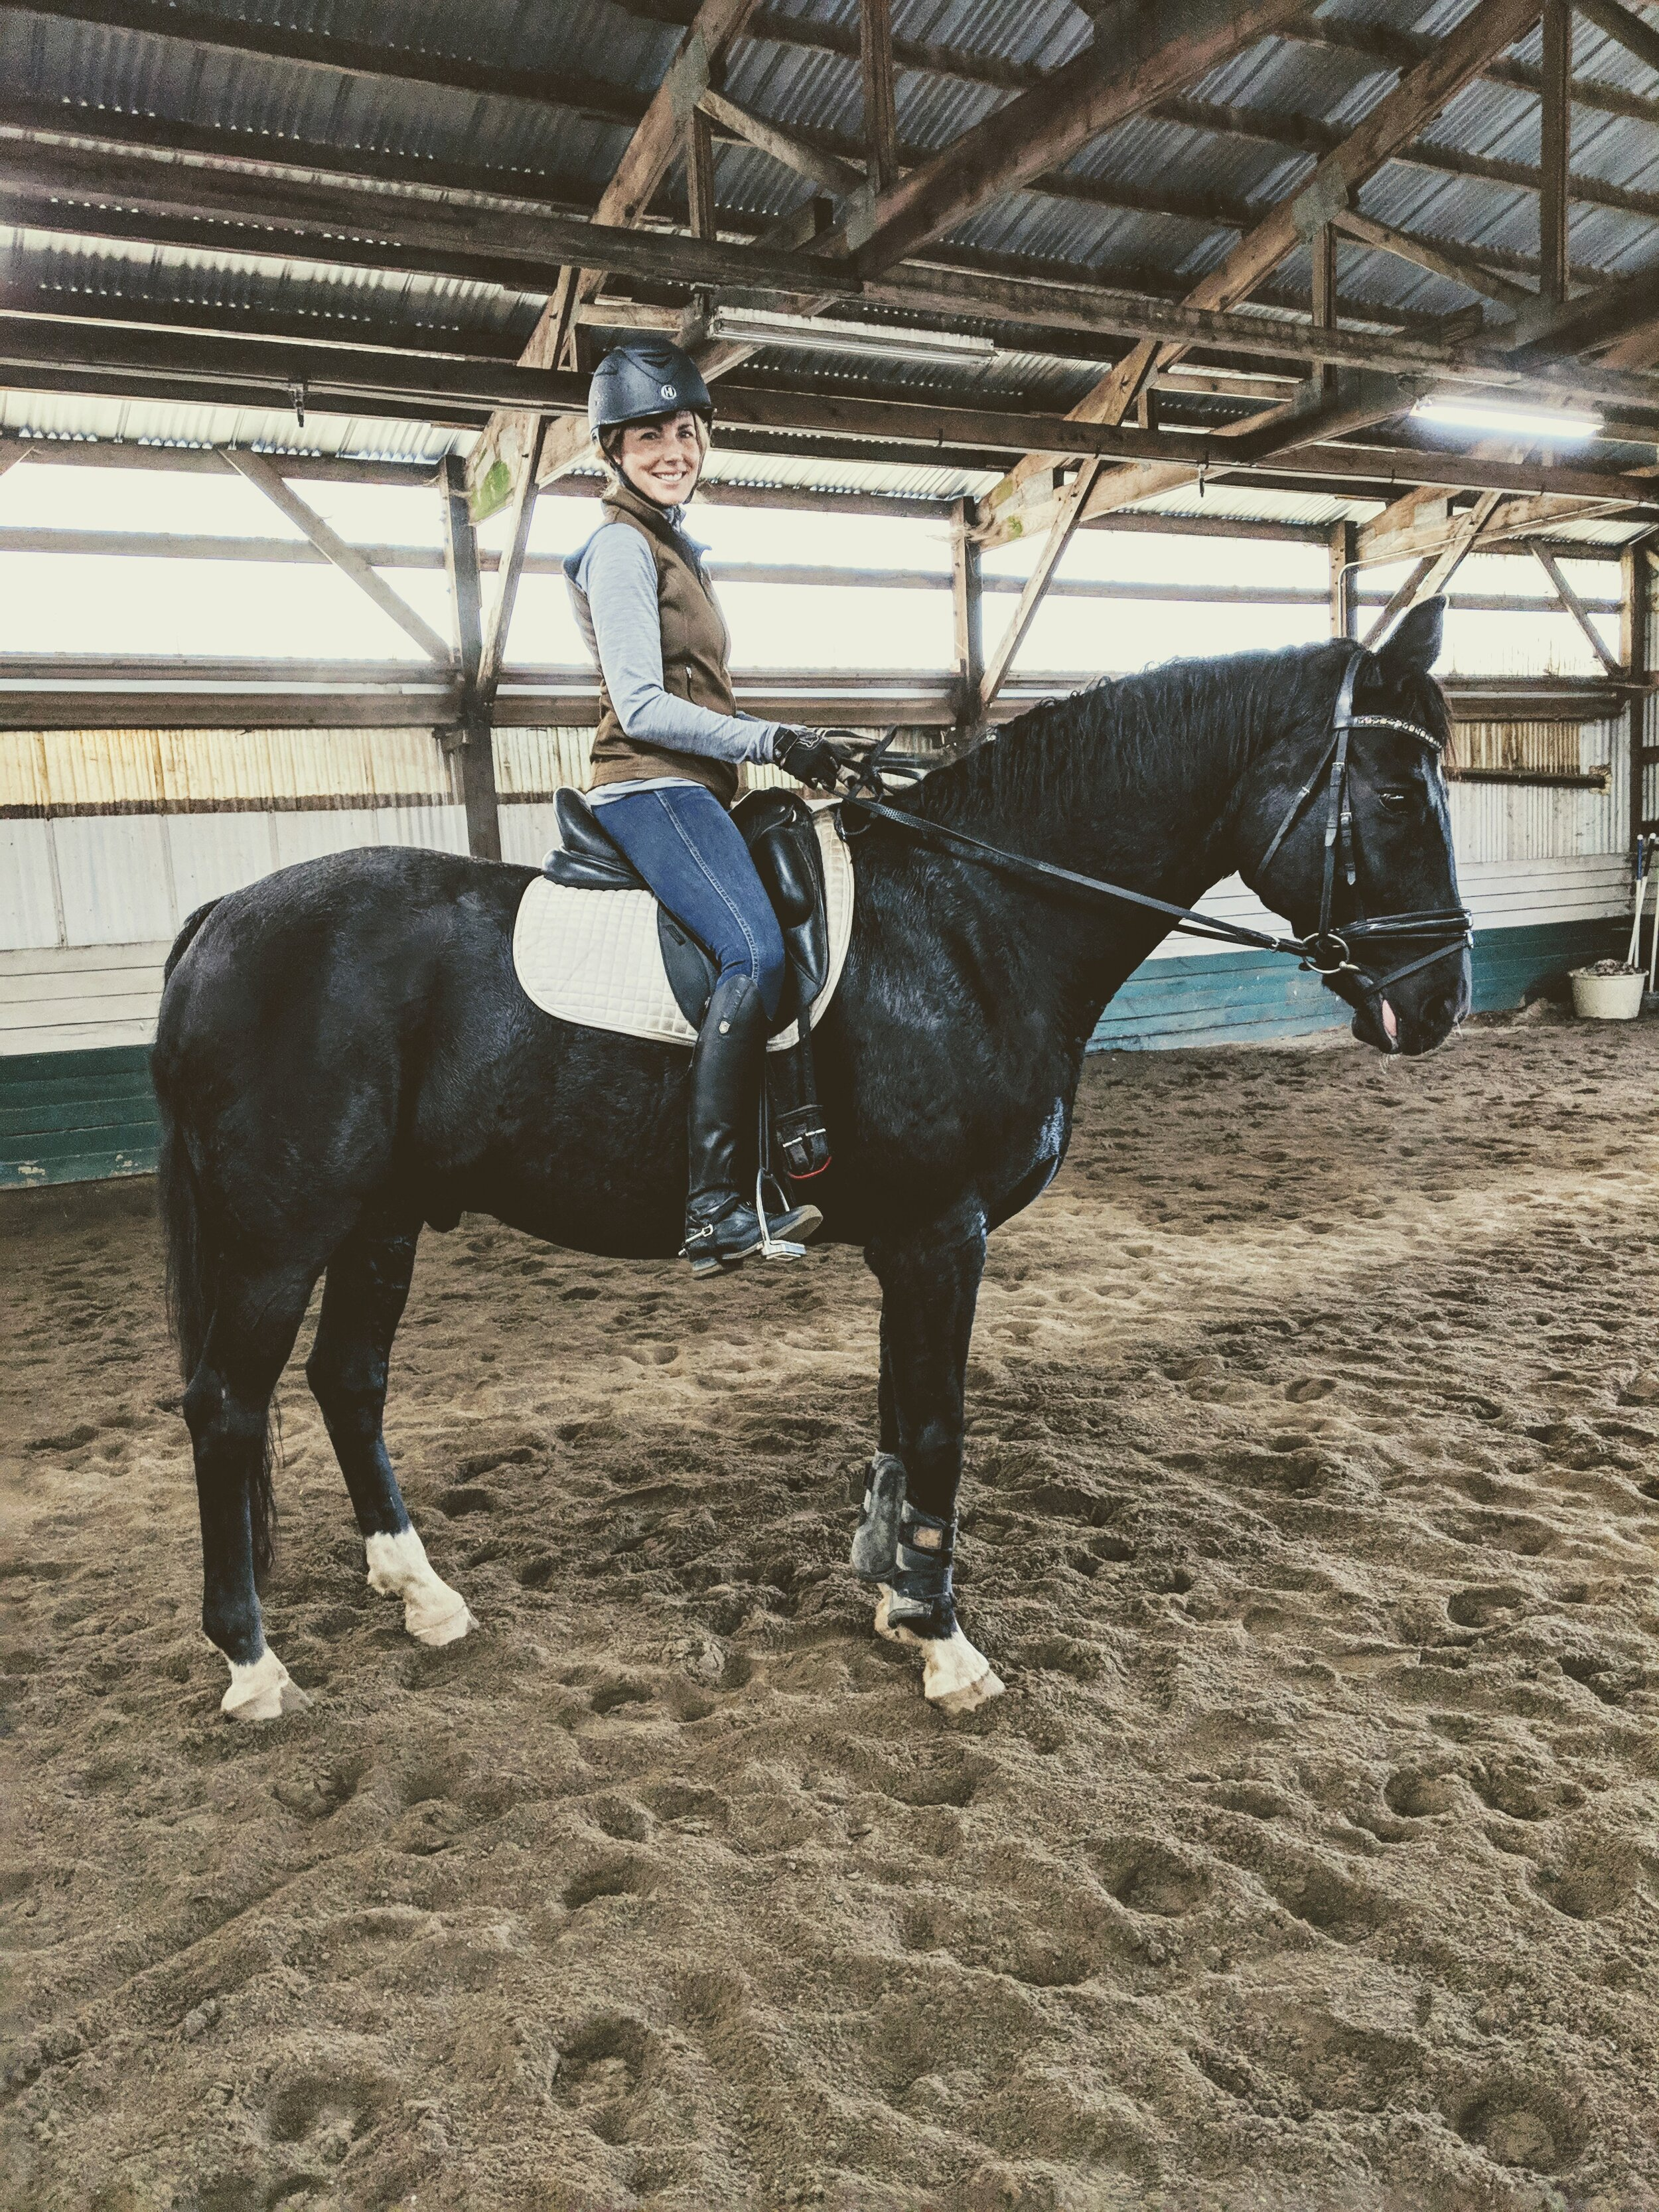 A photo with sweet Allegro. This was my first time back on a horse after a bad fall that resulted in blunt chest trauma, concussion and a cracked tooth for me.